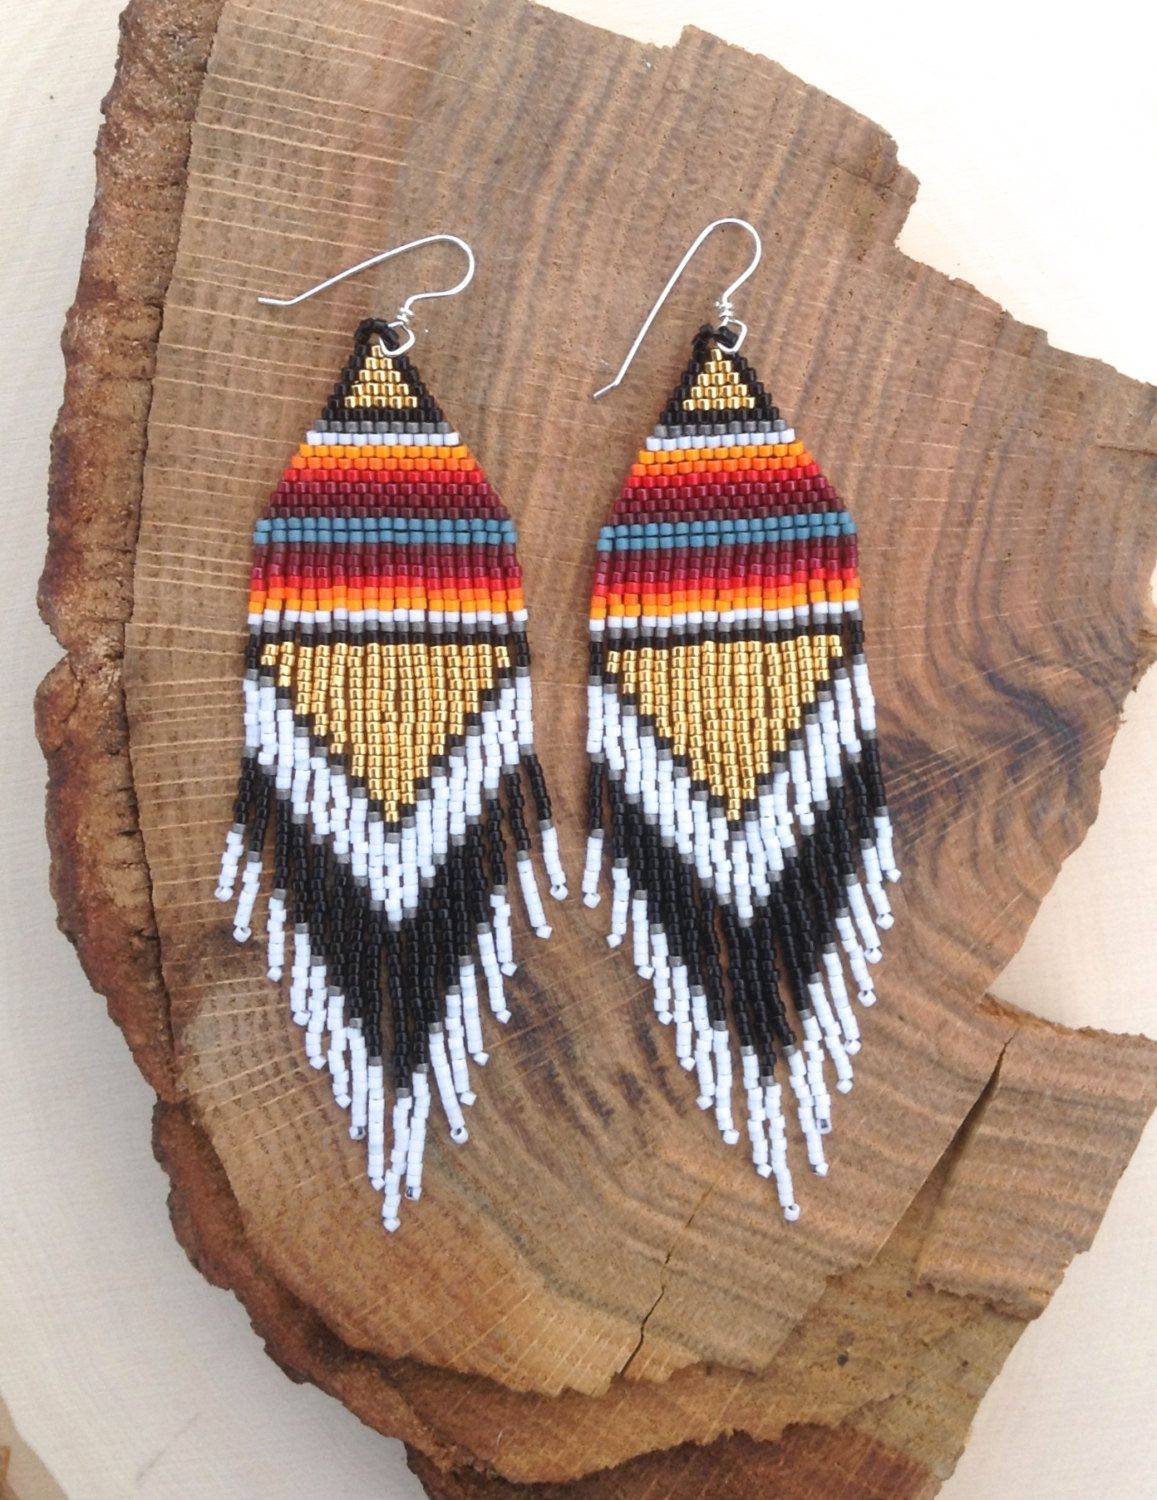 7faaa723f3b20 Gold Tri-Power Earrings- Made to Order | Tissage | Boucle d'oreille ...